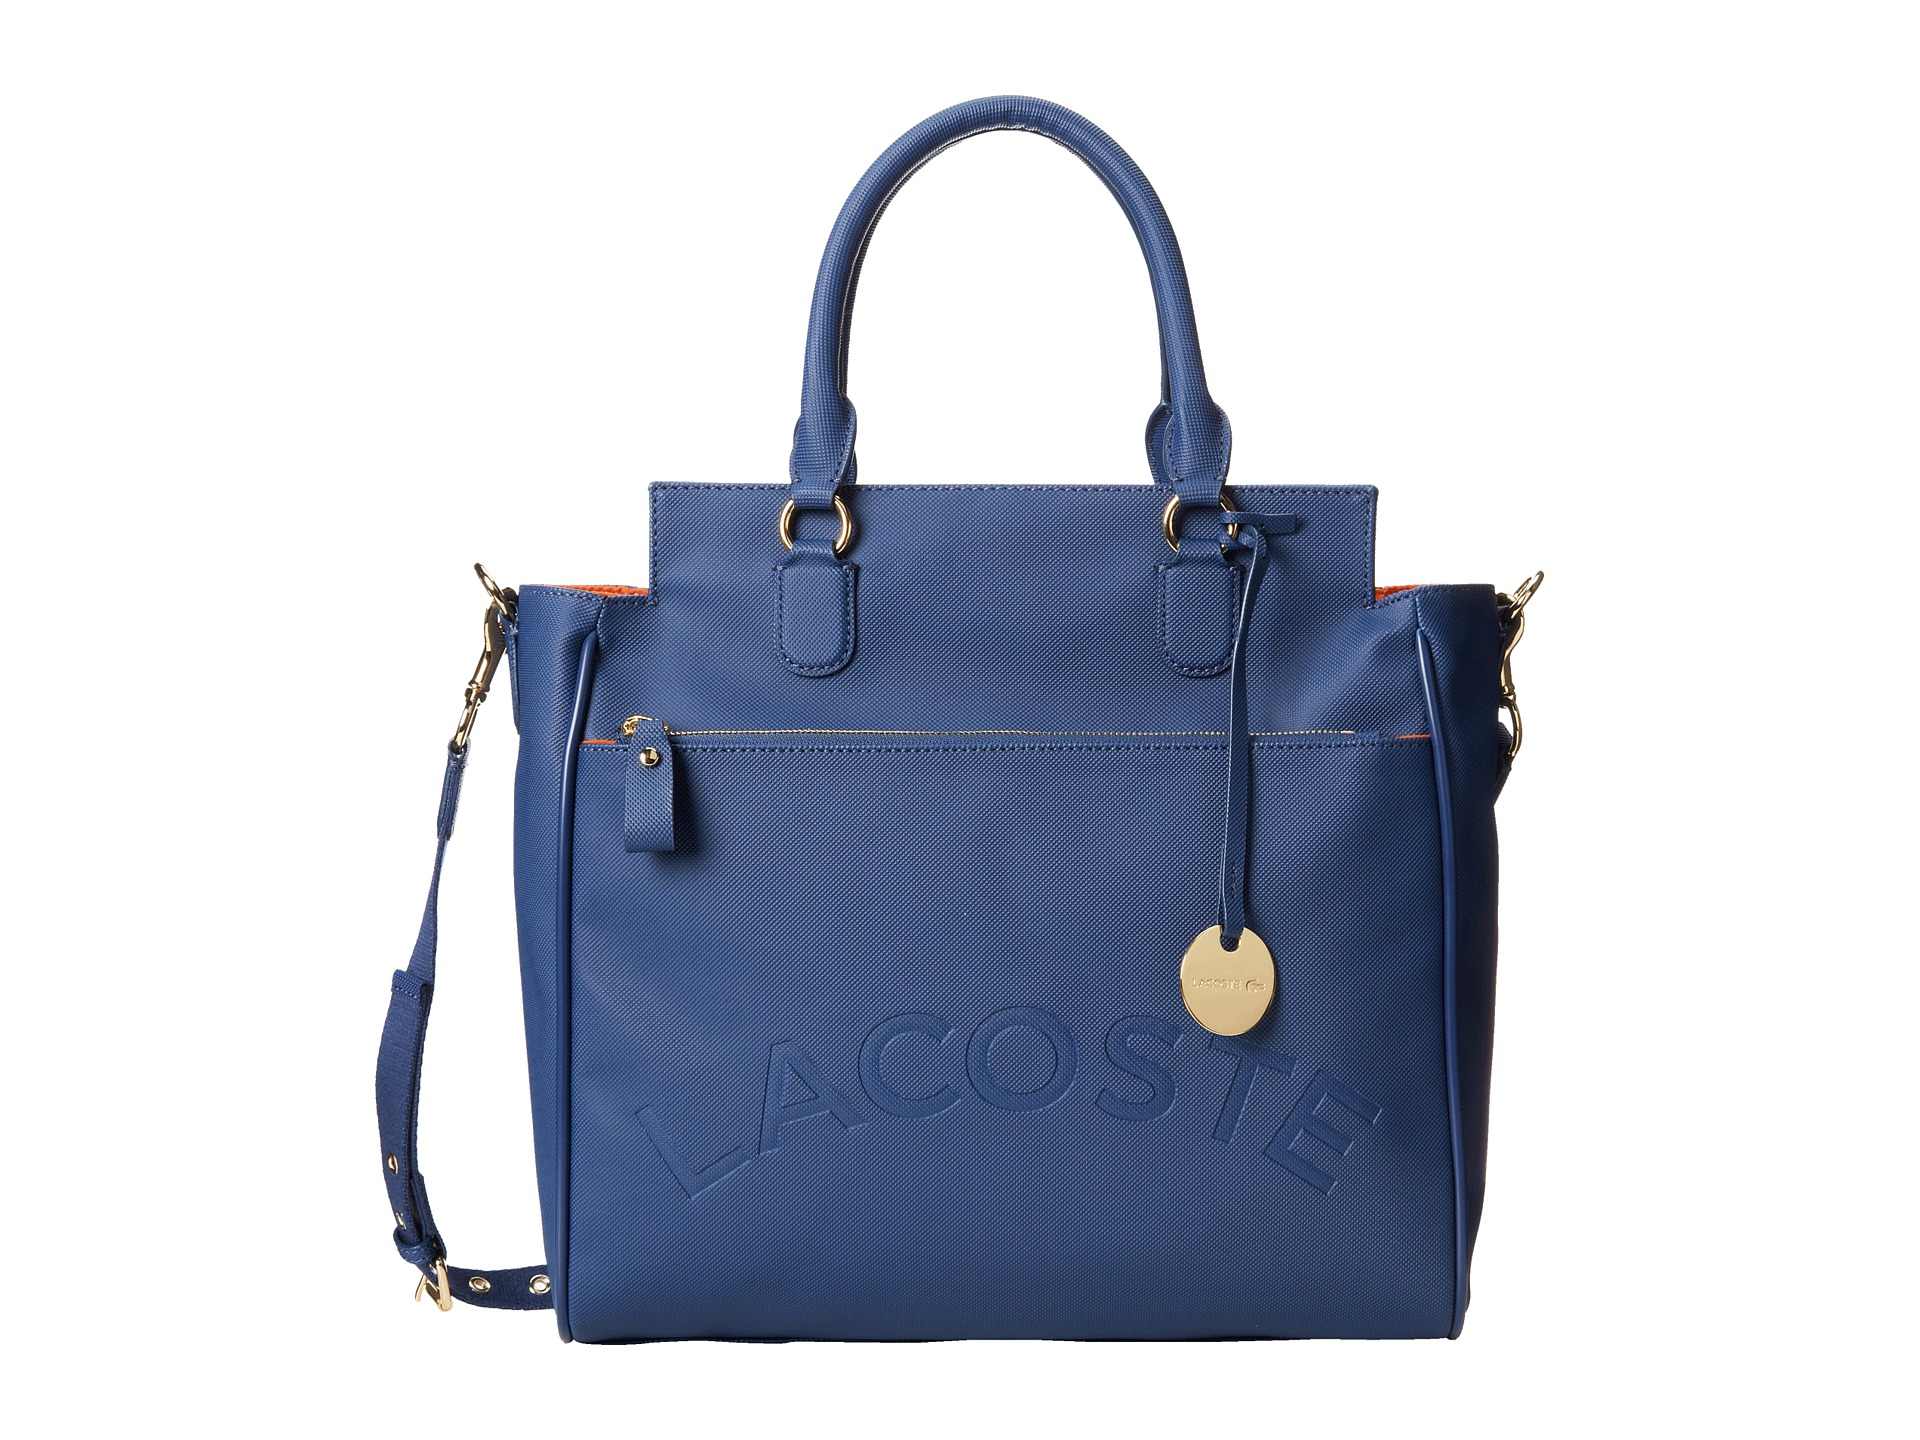 lacoste bags - photo #22